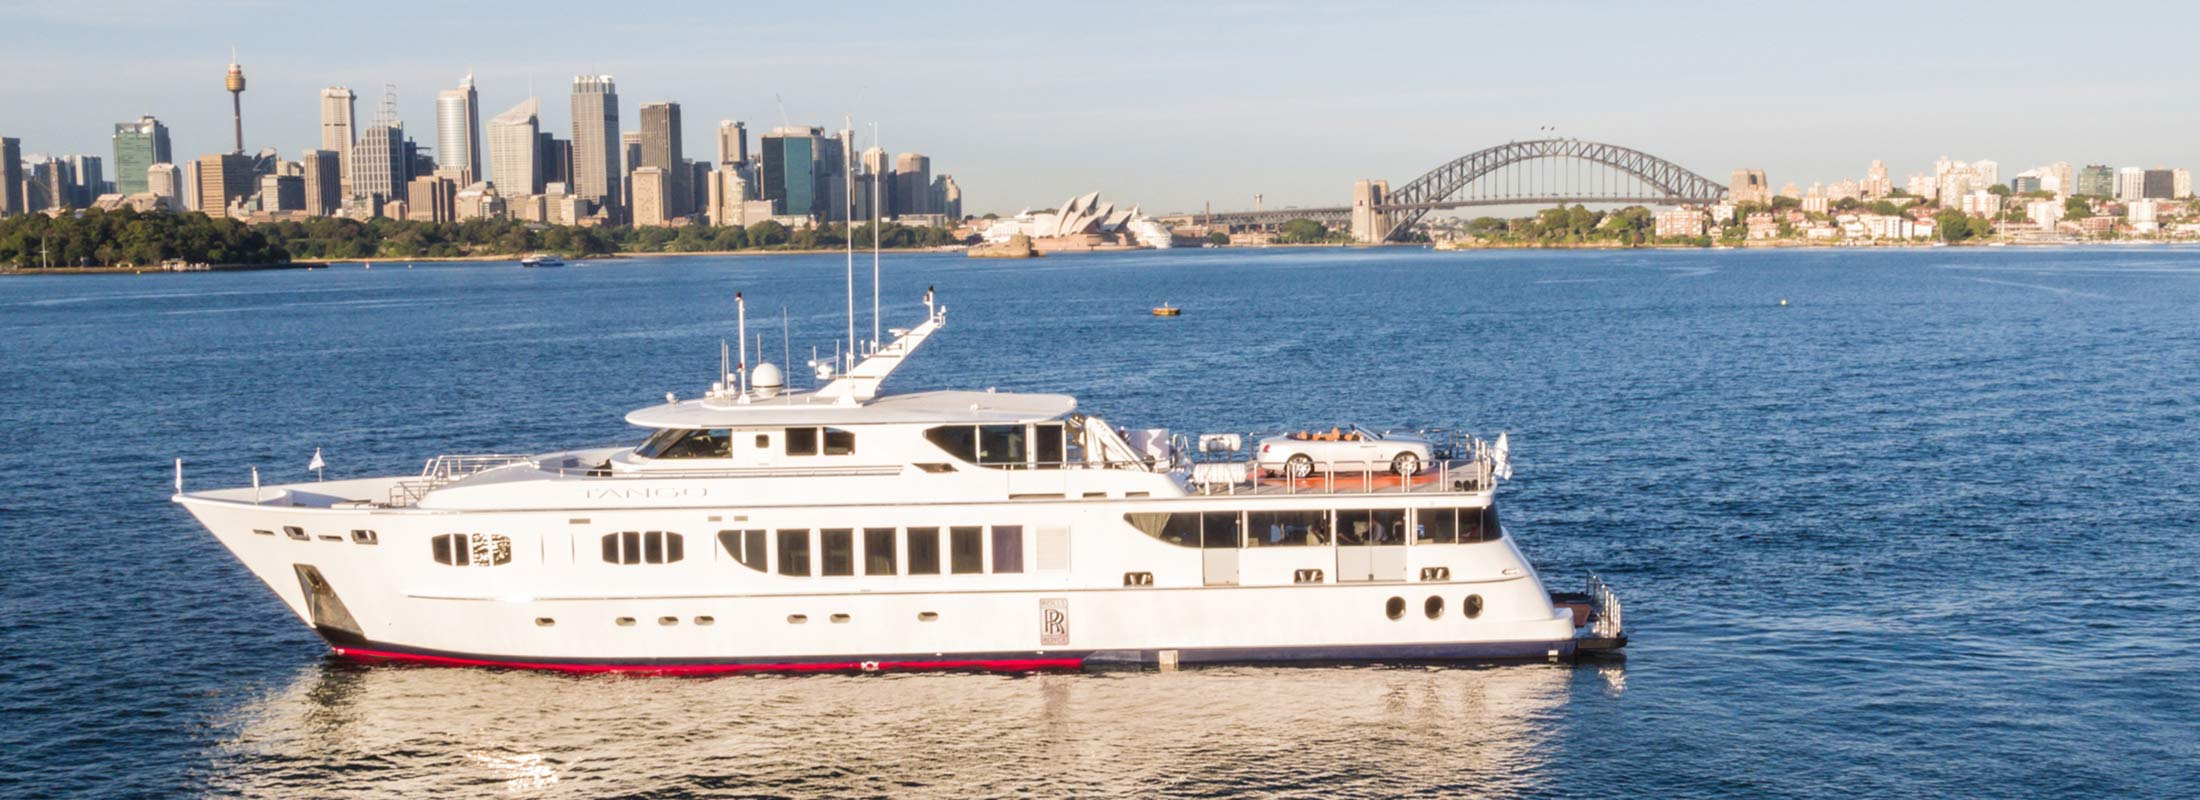 Tango Motor Yacht for Charter Great Barrier Reef  slider 1